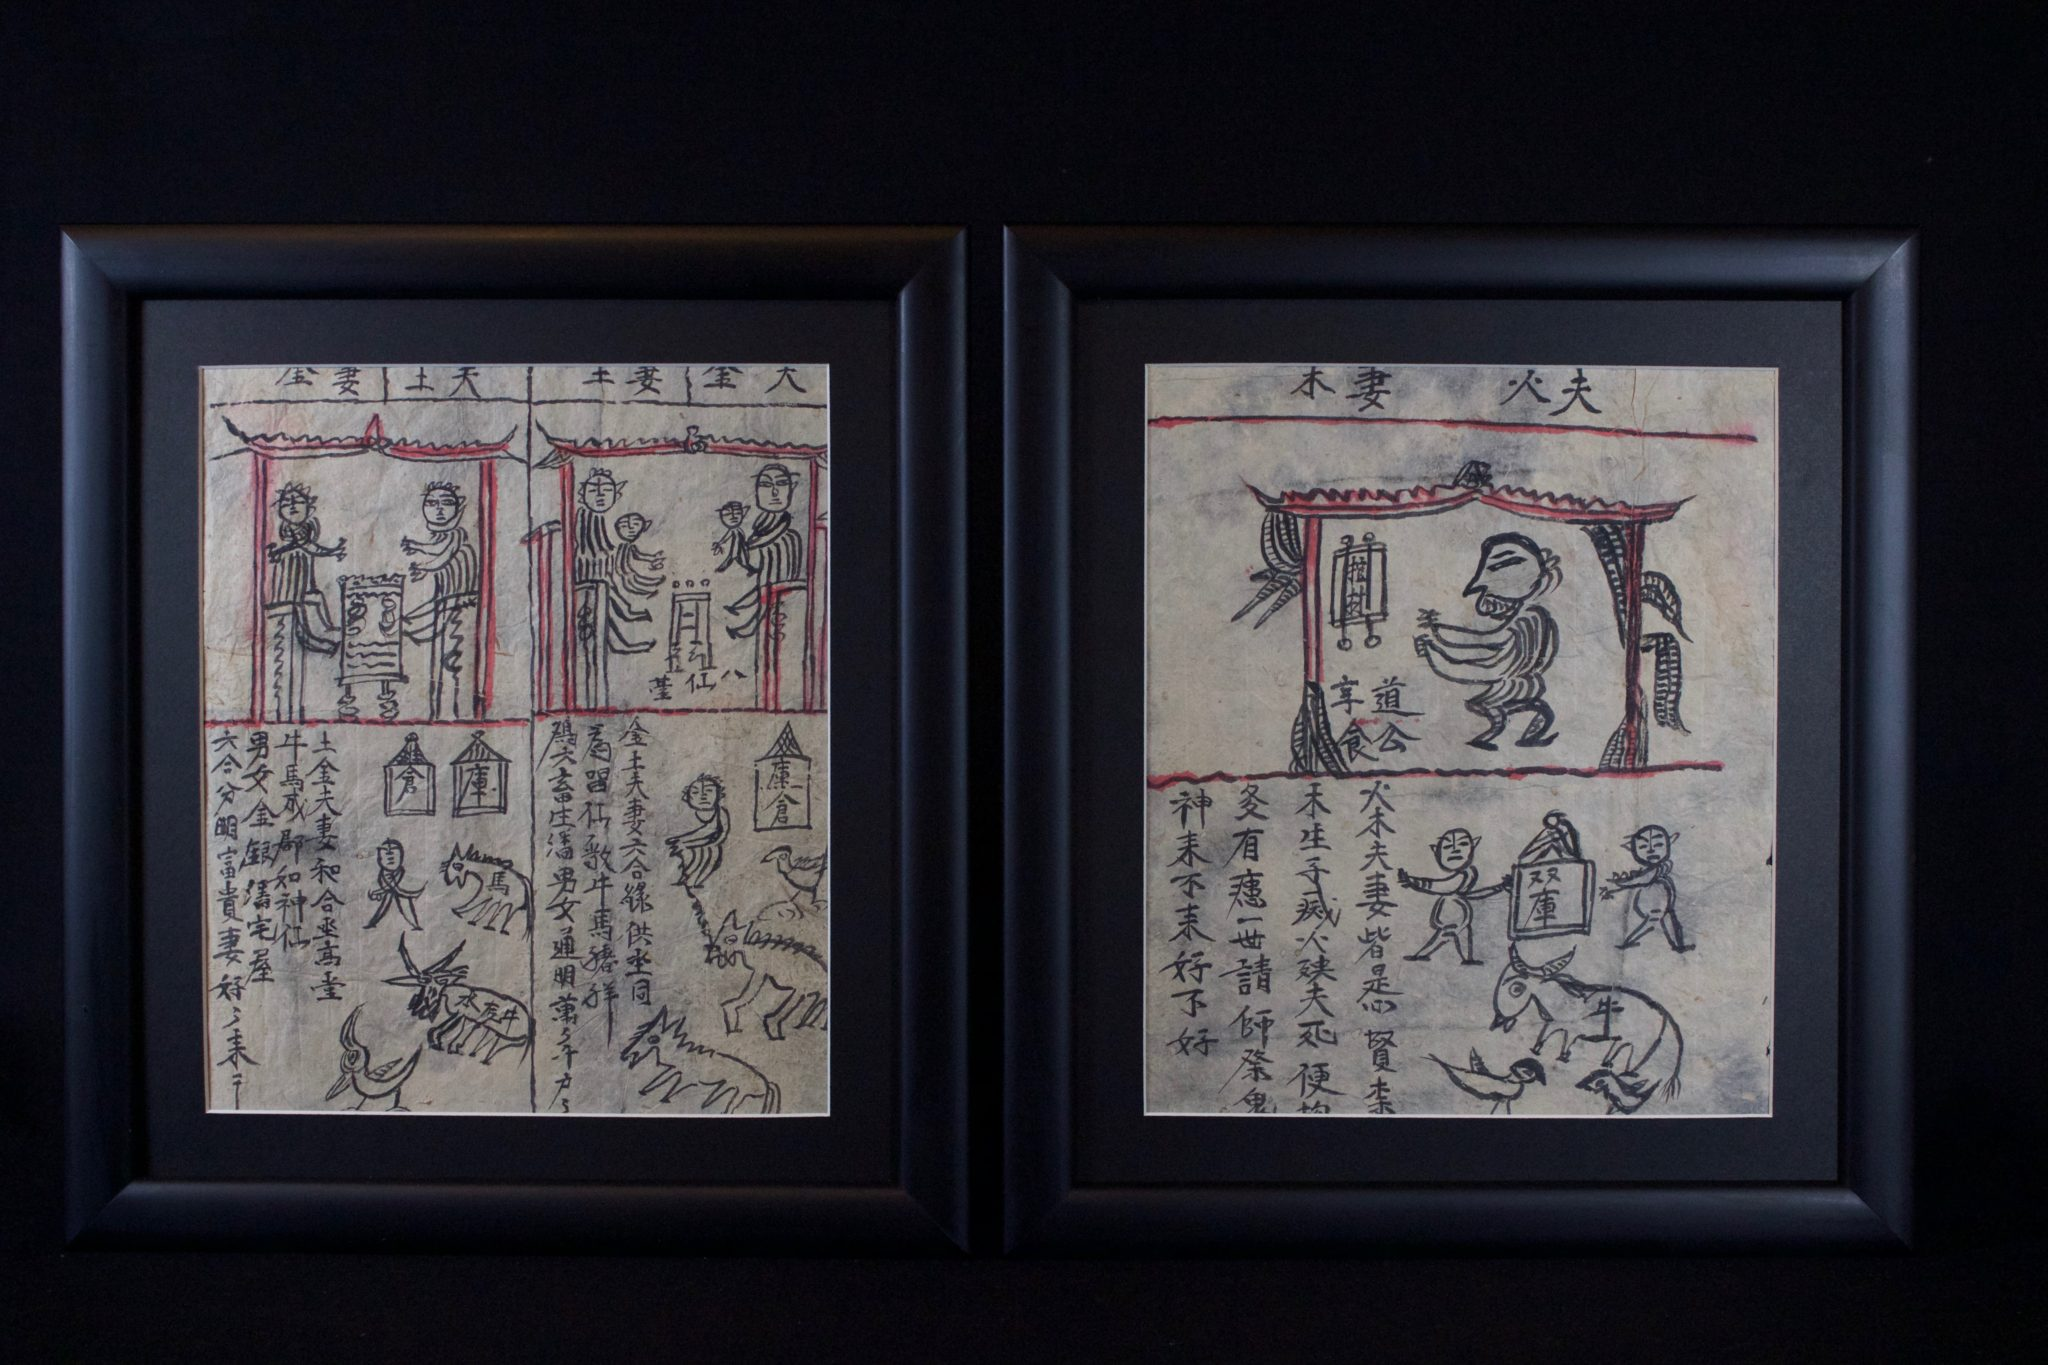 "Pages from Shaman's Personal Instructional Book, Cao Bang province, Vietnam, Red Yao people Early 20th c, Ink on handmade mulberry paper (tapa), Written in Nom (Chinese characters adapted to Vietnamese), books are an integral part of a shaman's repertoire. They range from explanations of various rituals and use of objects, to astrology, history, songs, laws, etiquette, children's tales, hunting practices, formulas, spells and feng shui. Shaman make their own books to help store their knowledge therefore no two are alike and a high level shaman will have a large library. 12"" x 11"" x ½"" (framed), $120. each"